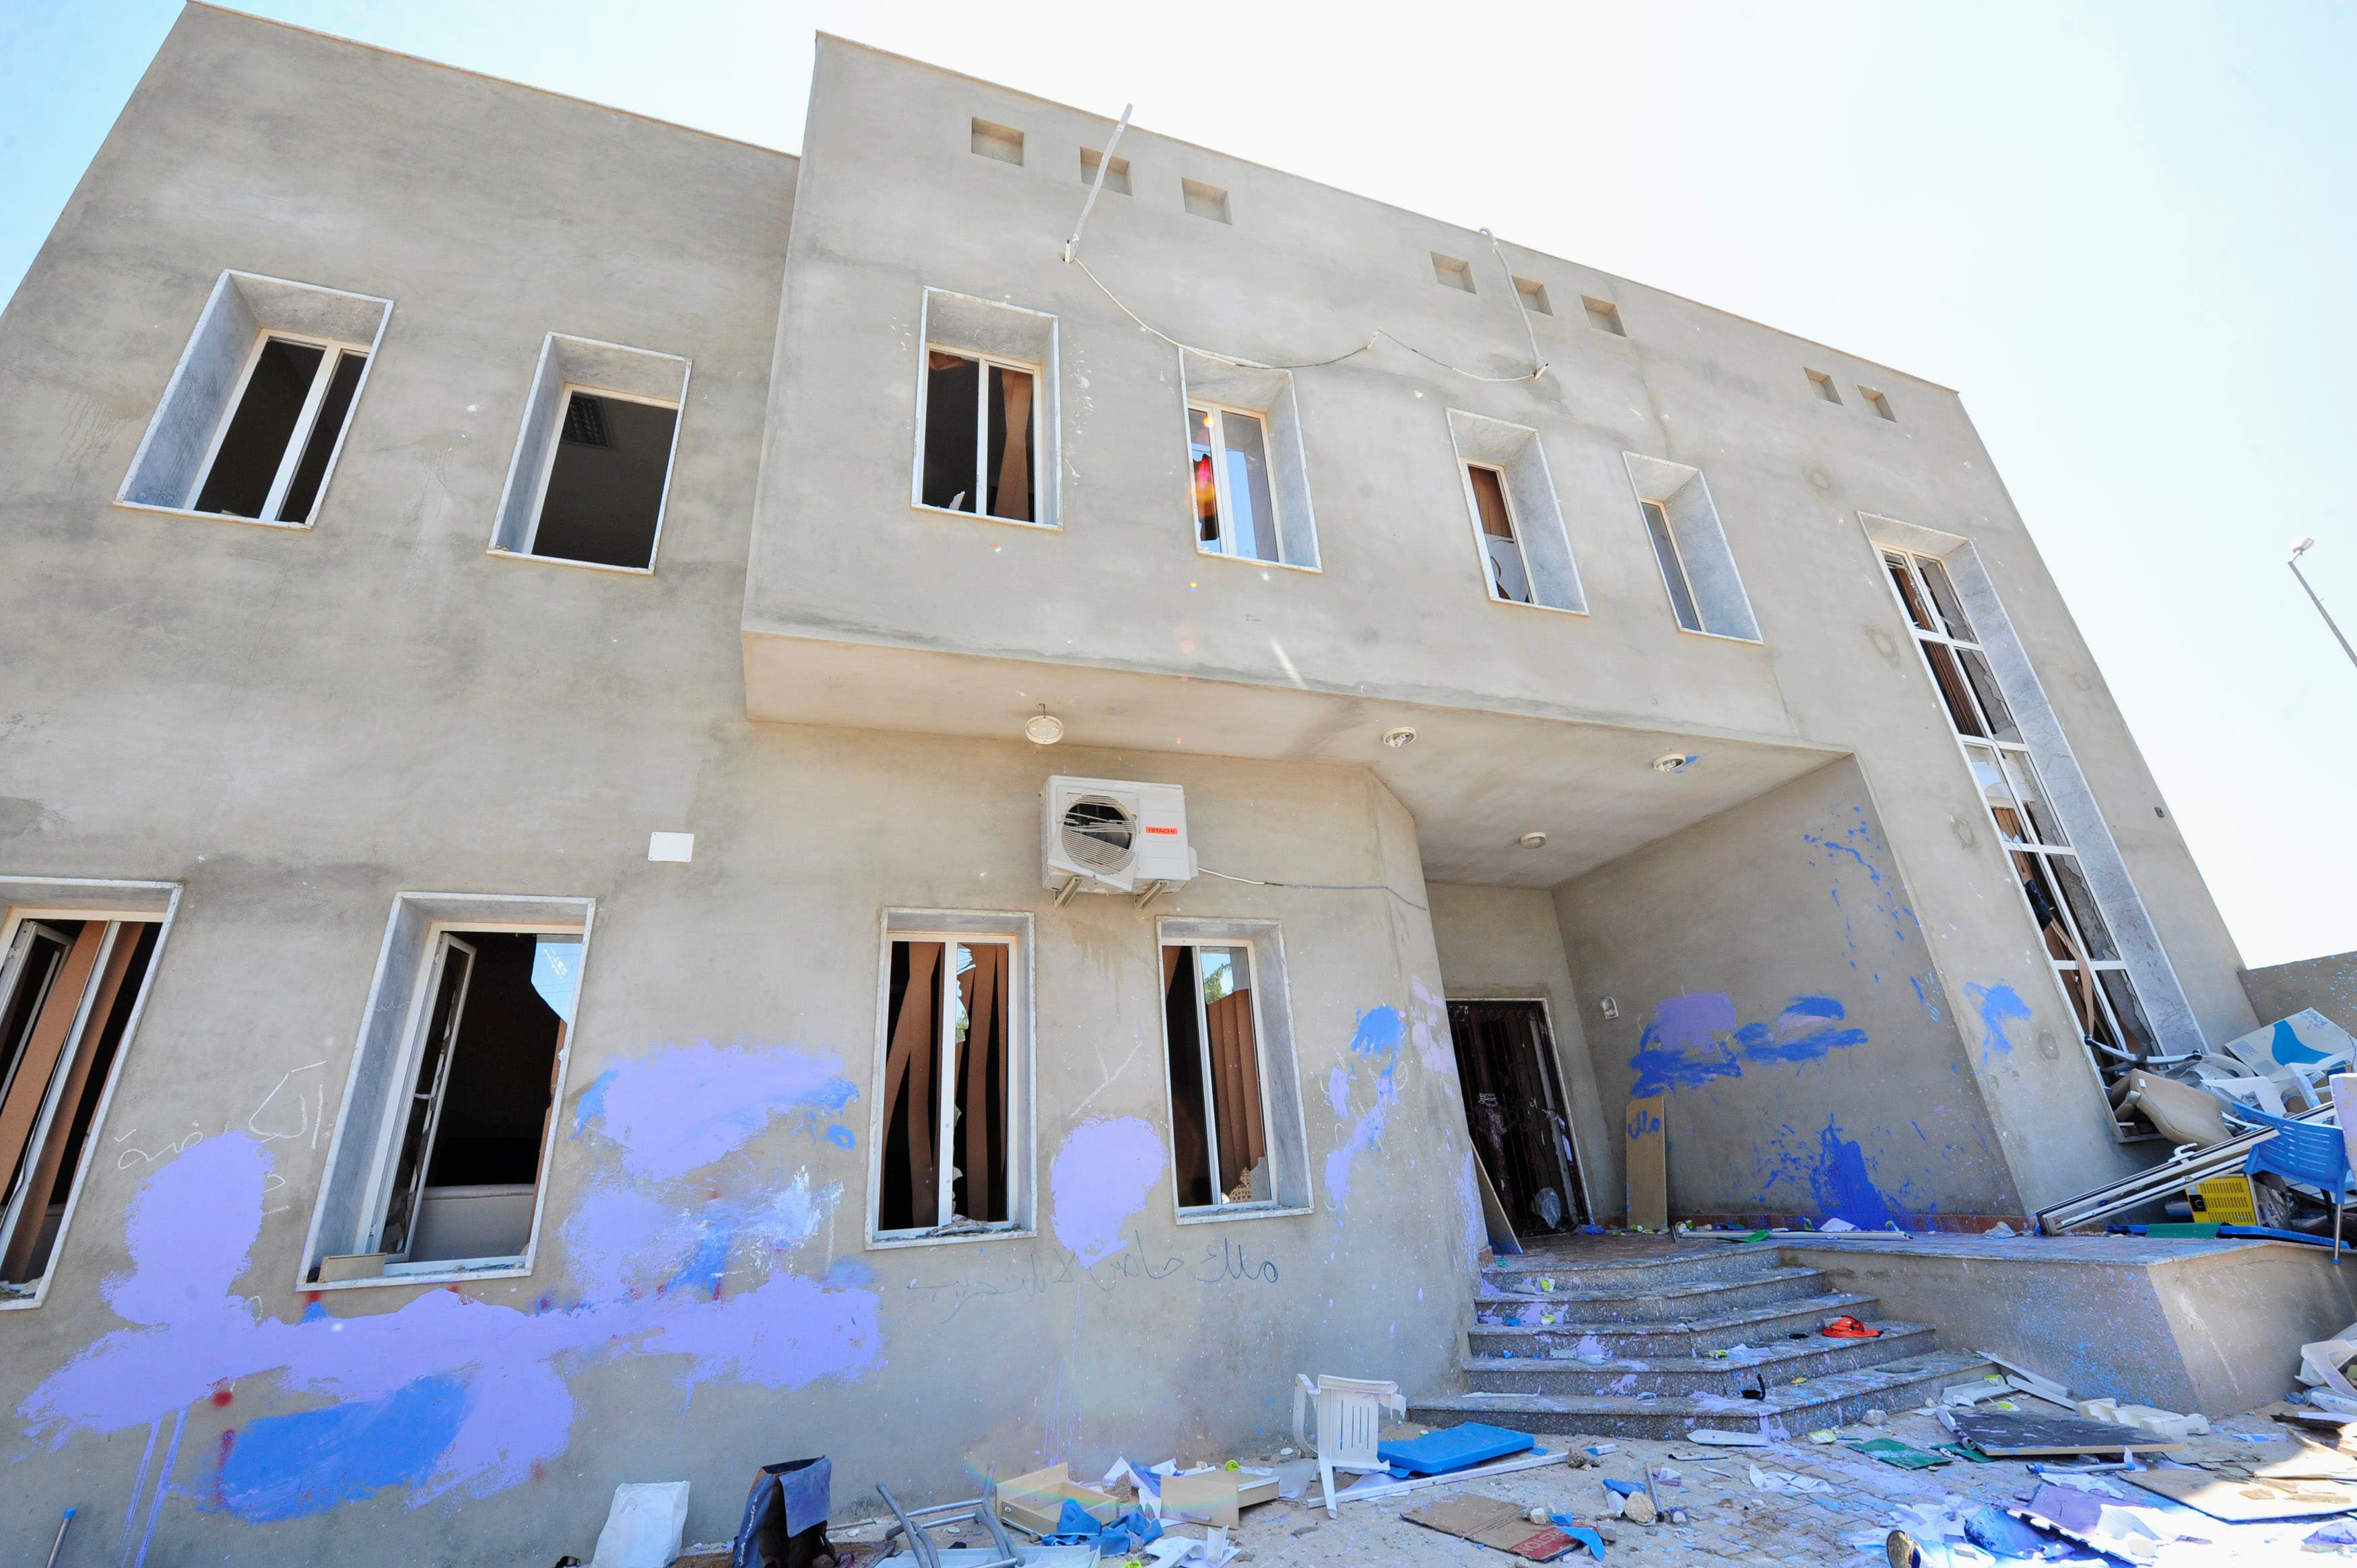 The headquarters of the Muslim Brotherhood, destroyed by protesters against the the killing of lawyer and prominent Libyan political activist Abdelsalam al-Mosmary, are seen in Benghazi July 27, 2013.  (Reuters)